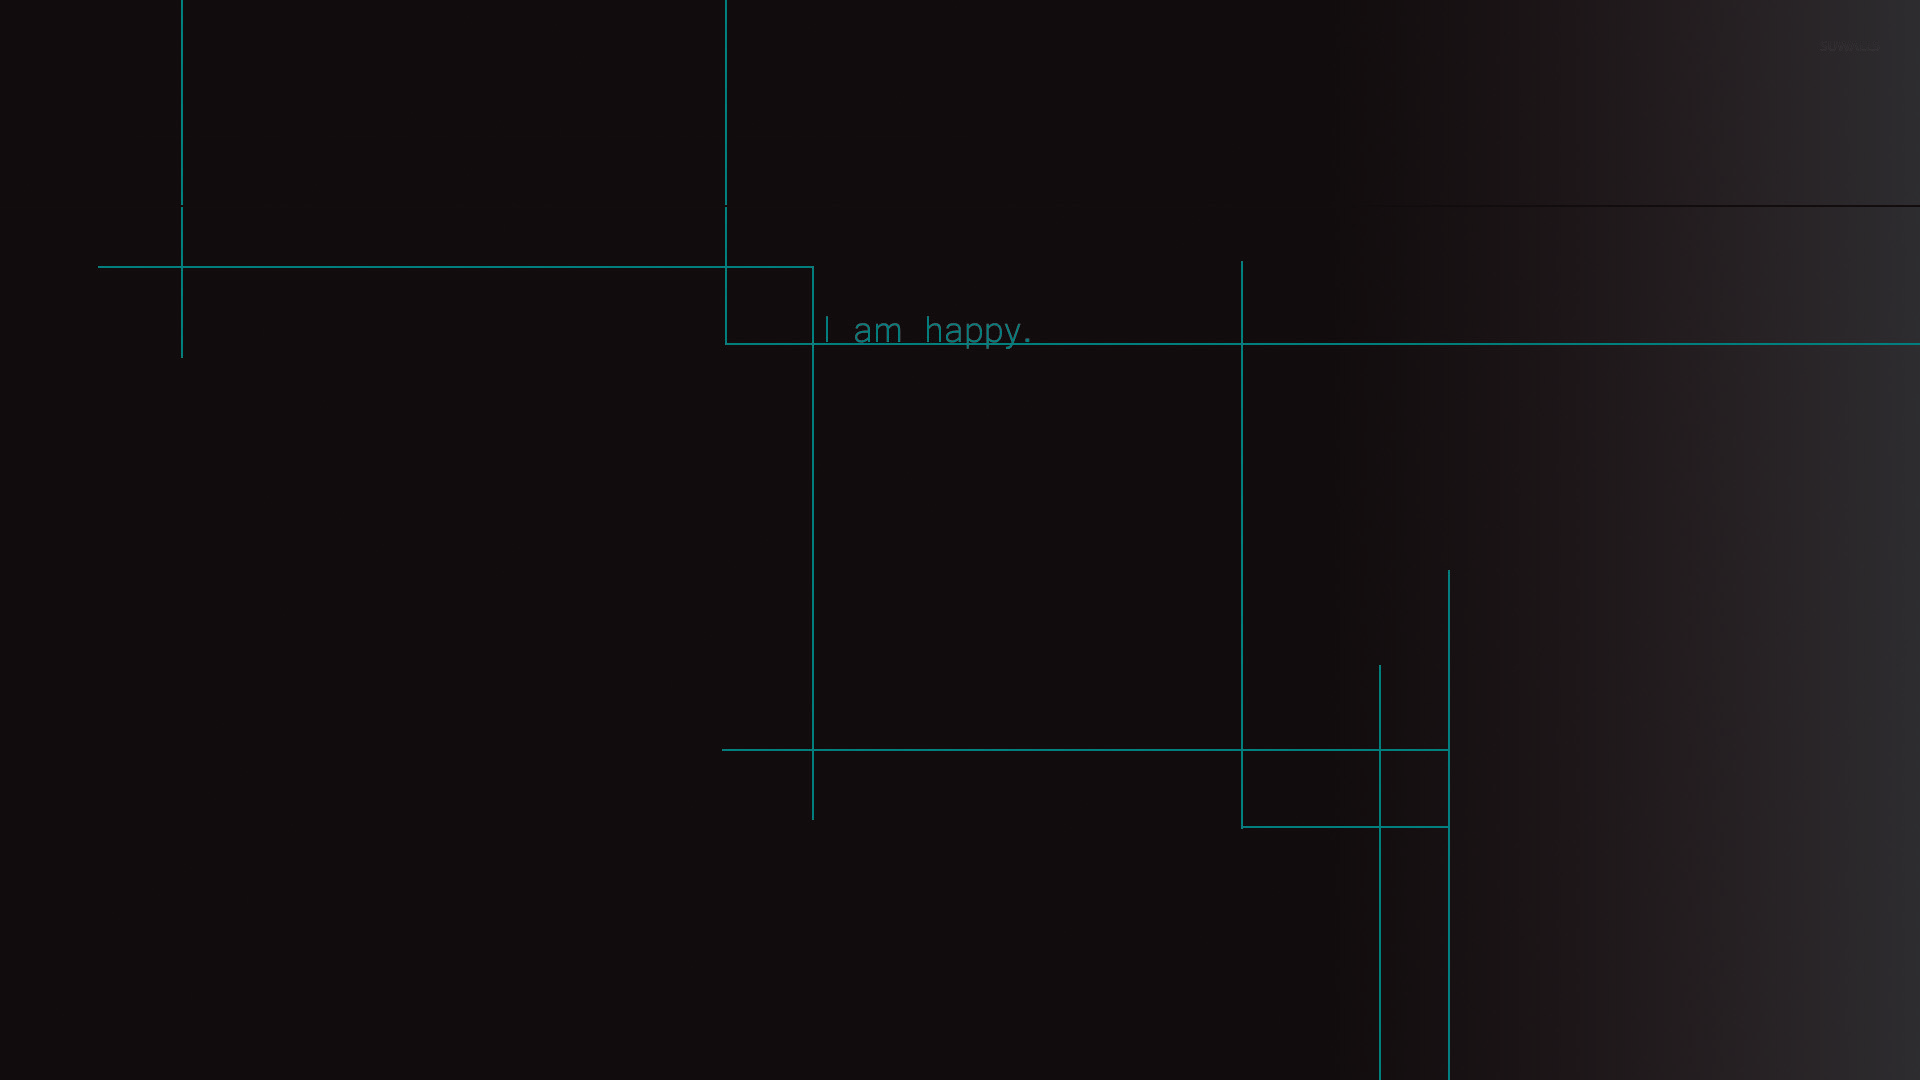 I am happy wallpaper - Typography wallpapers - #27504